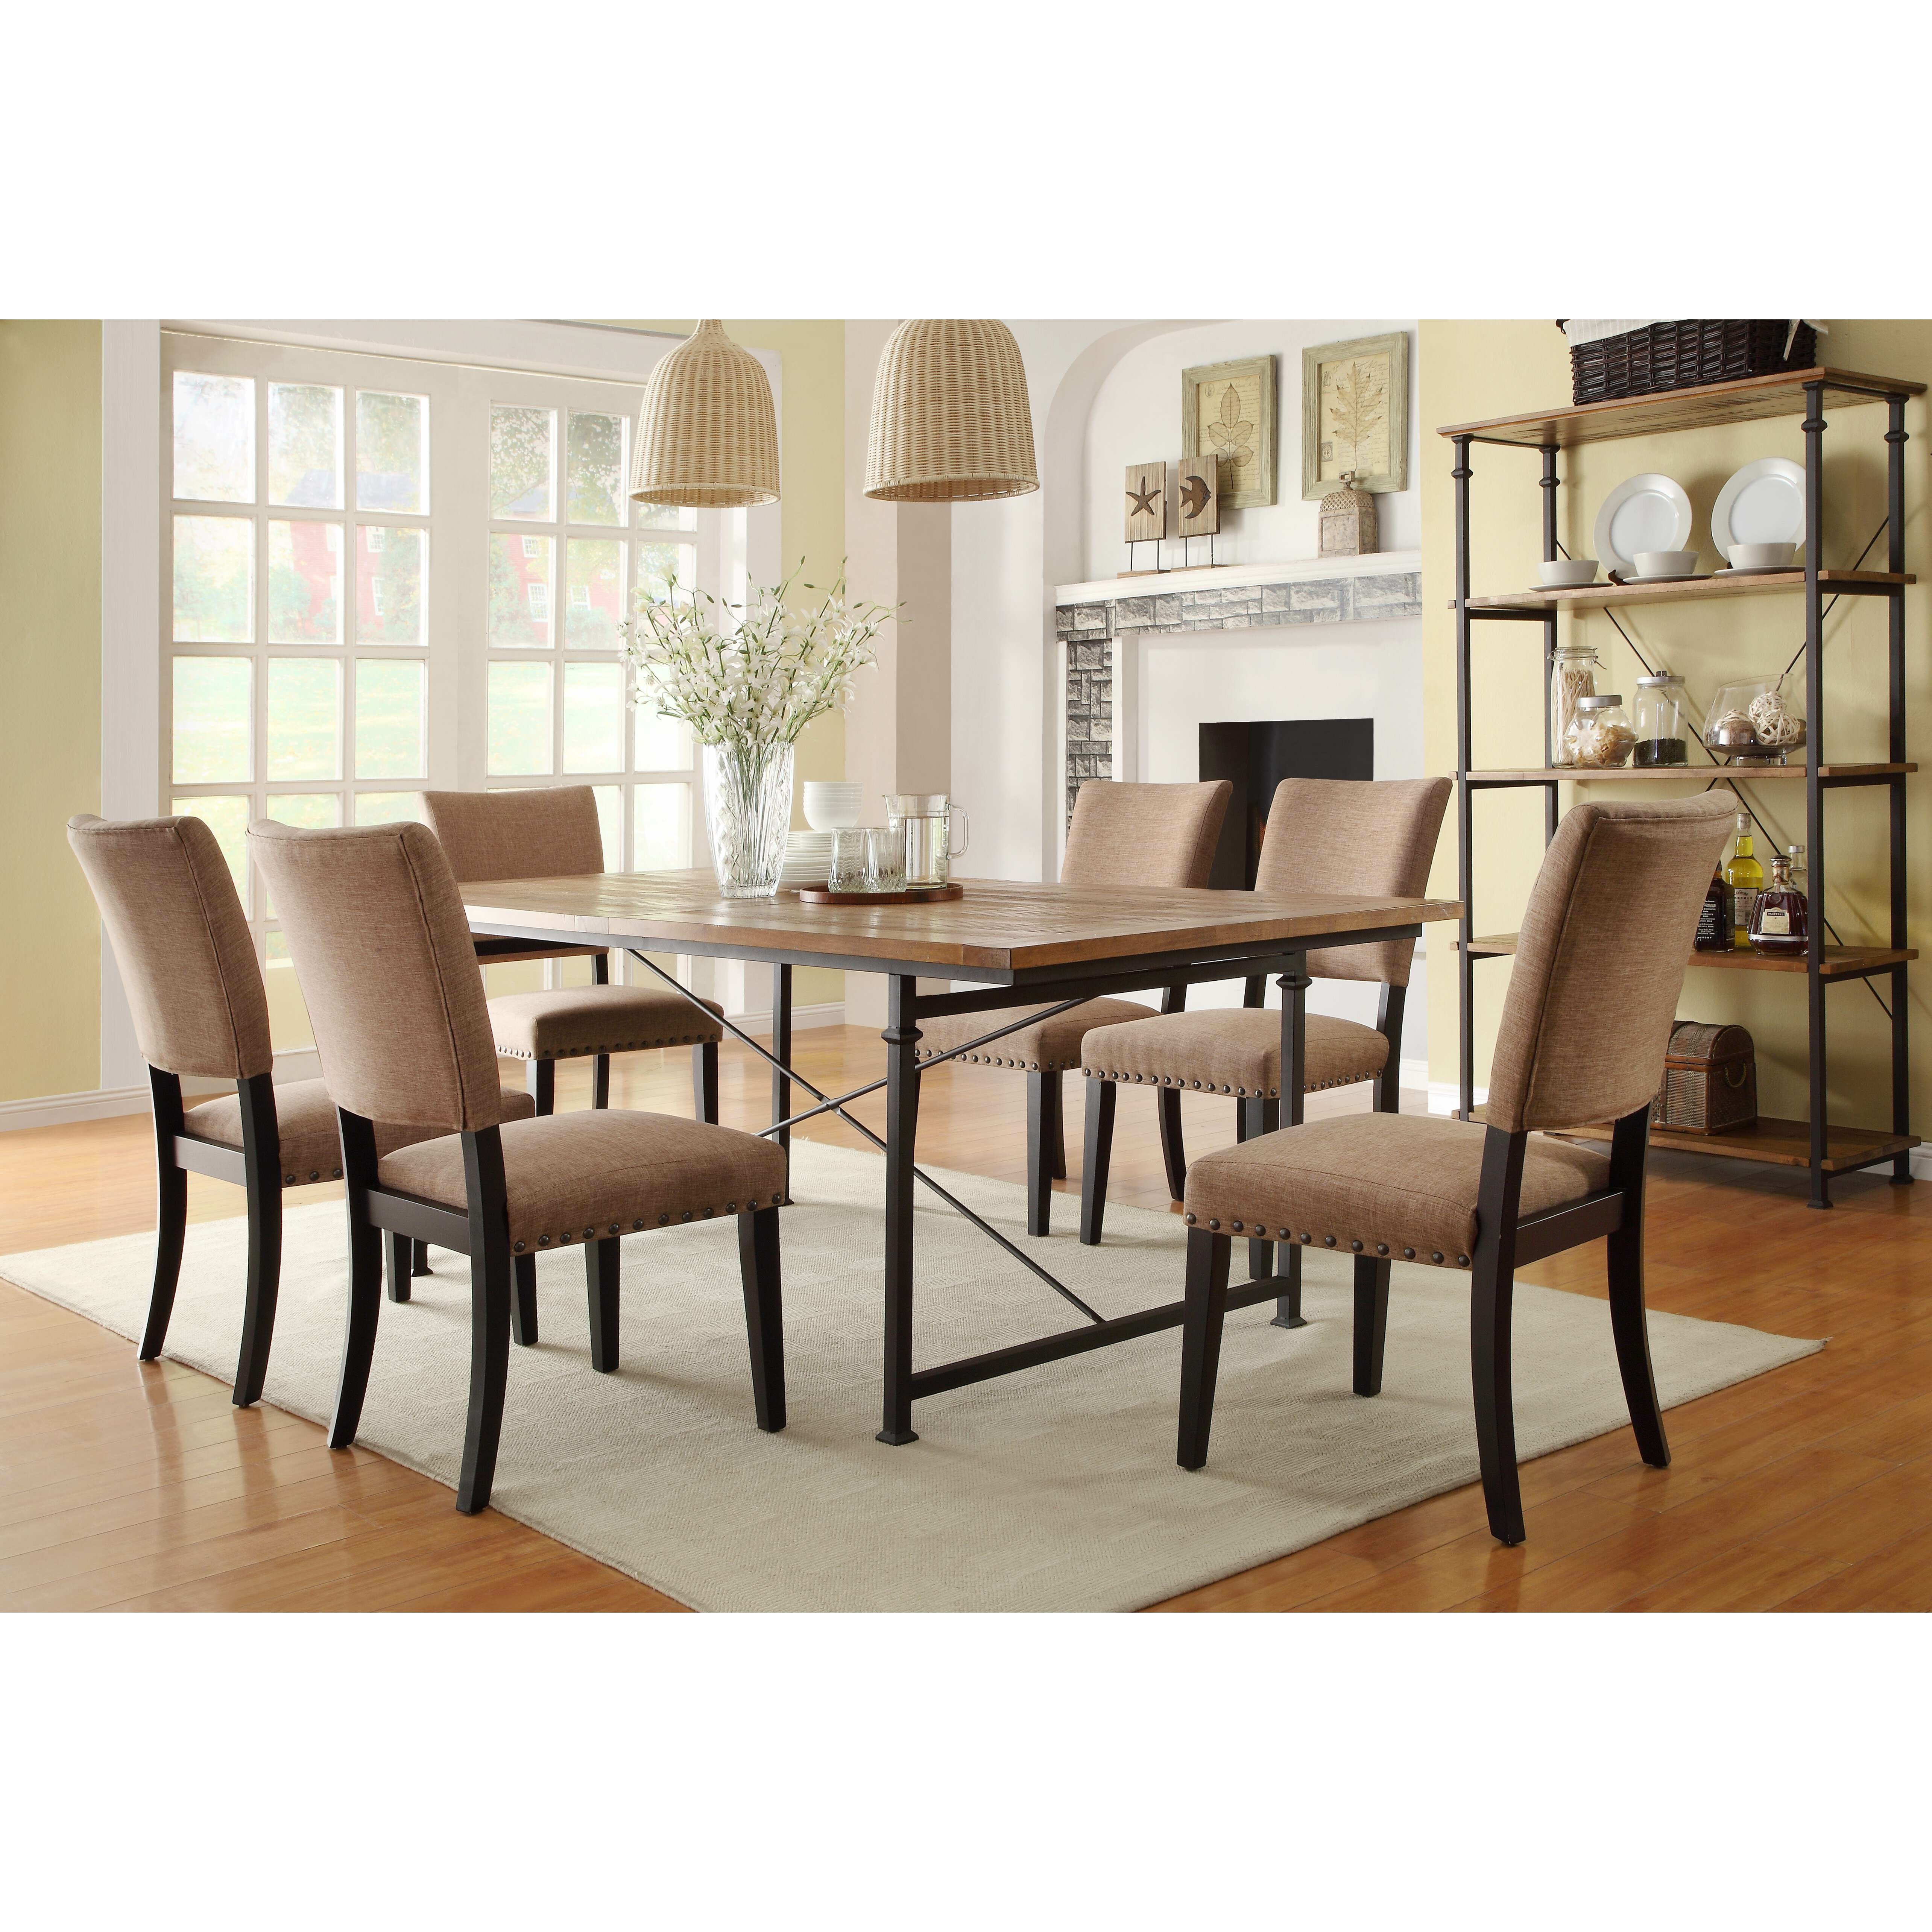 Ultimate Accents Urban 7 Piece Dining Set Reviews: Woodhaven Hill Derry 7 Piece Dining Set & Reviews